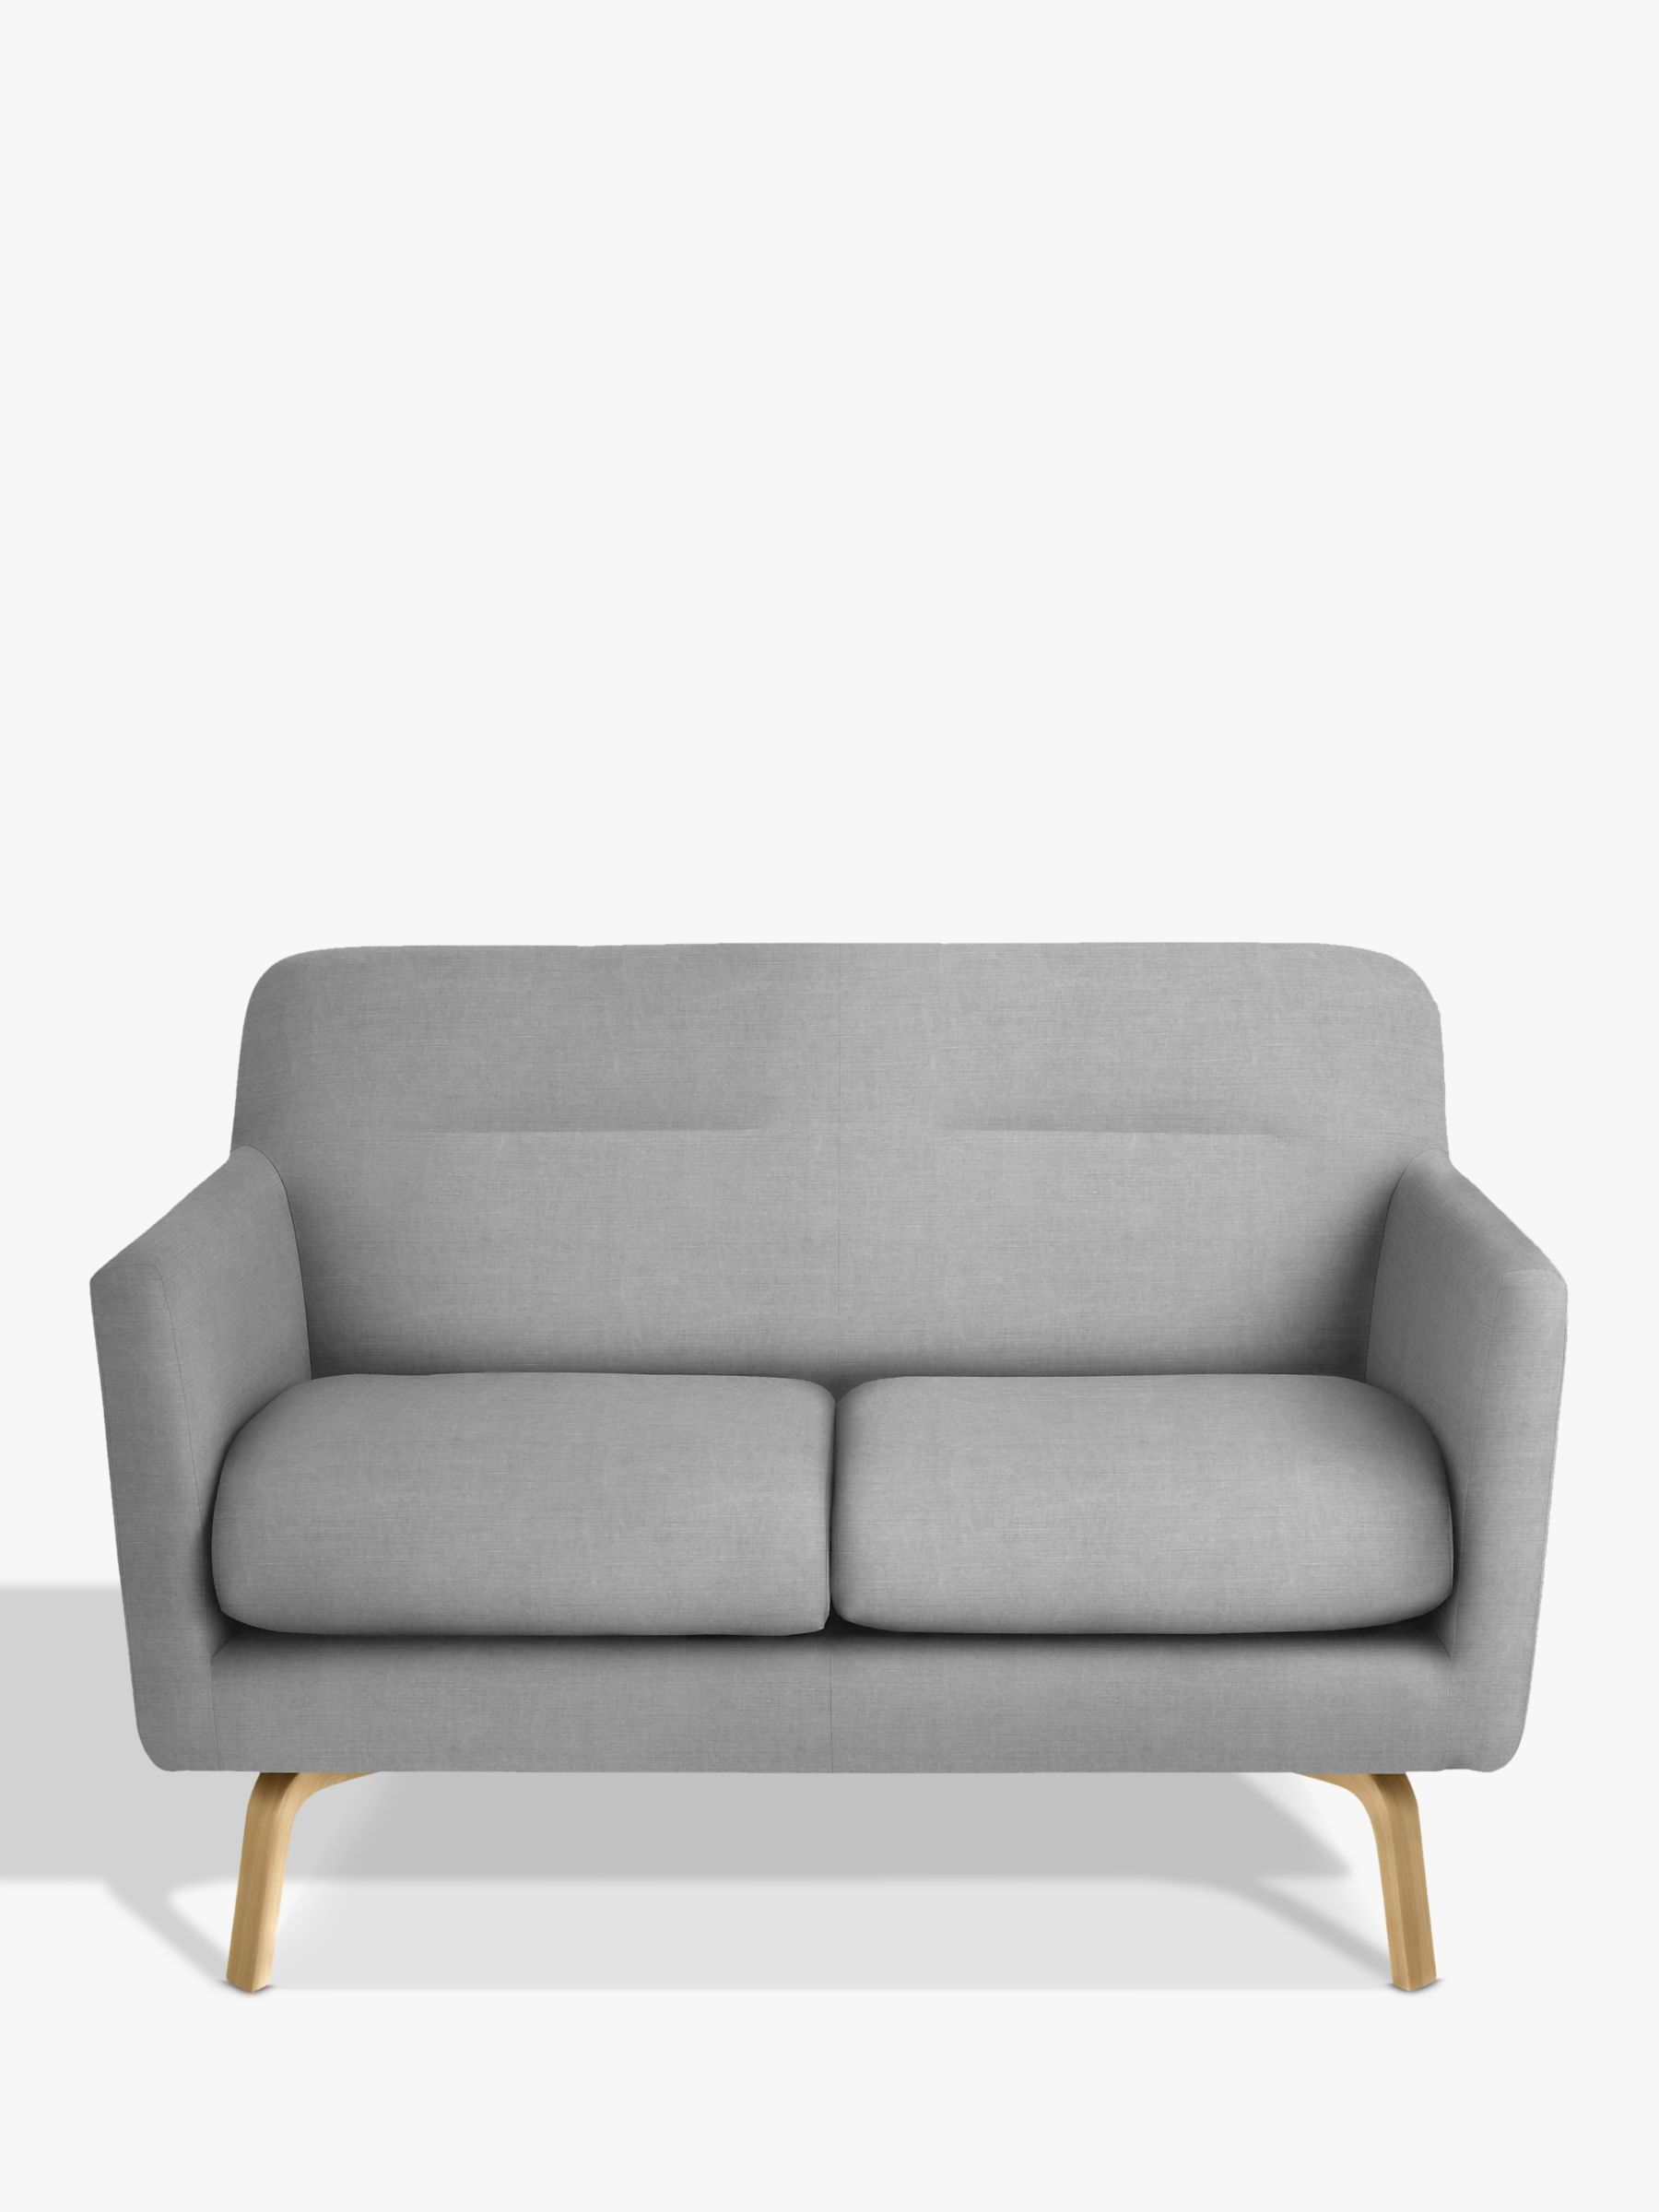 House by John Lewis Archie Small 2 Seater Sofa  Light Leg  Saga Grey         BuyHouse by John Lewis Archie Small 2 Seater Sofa  Light Leg  Saga Grey  Online